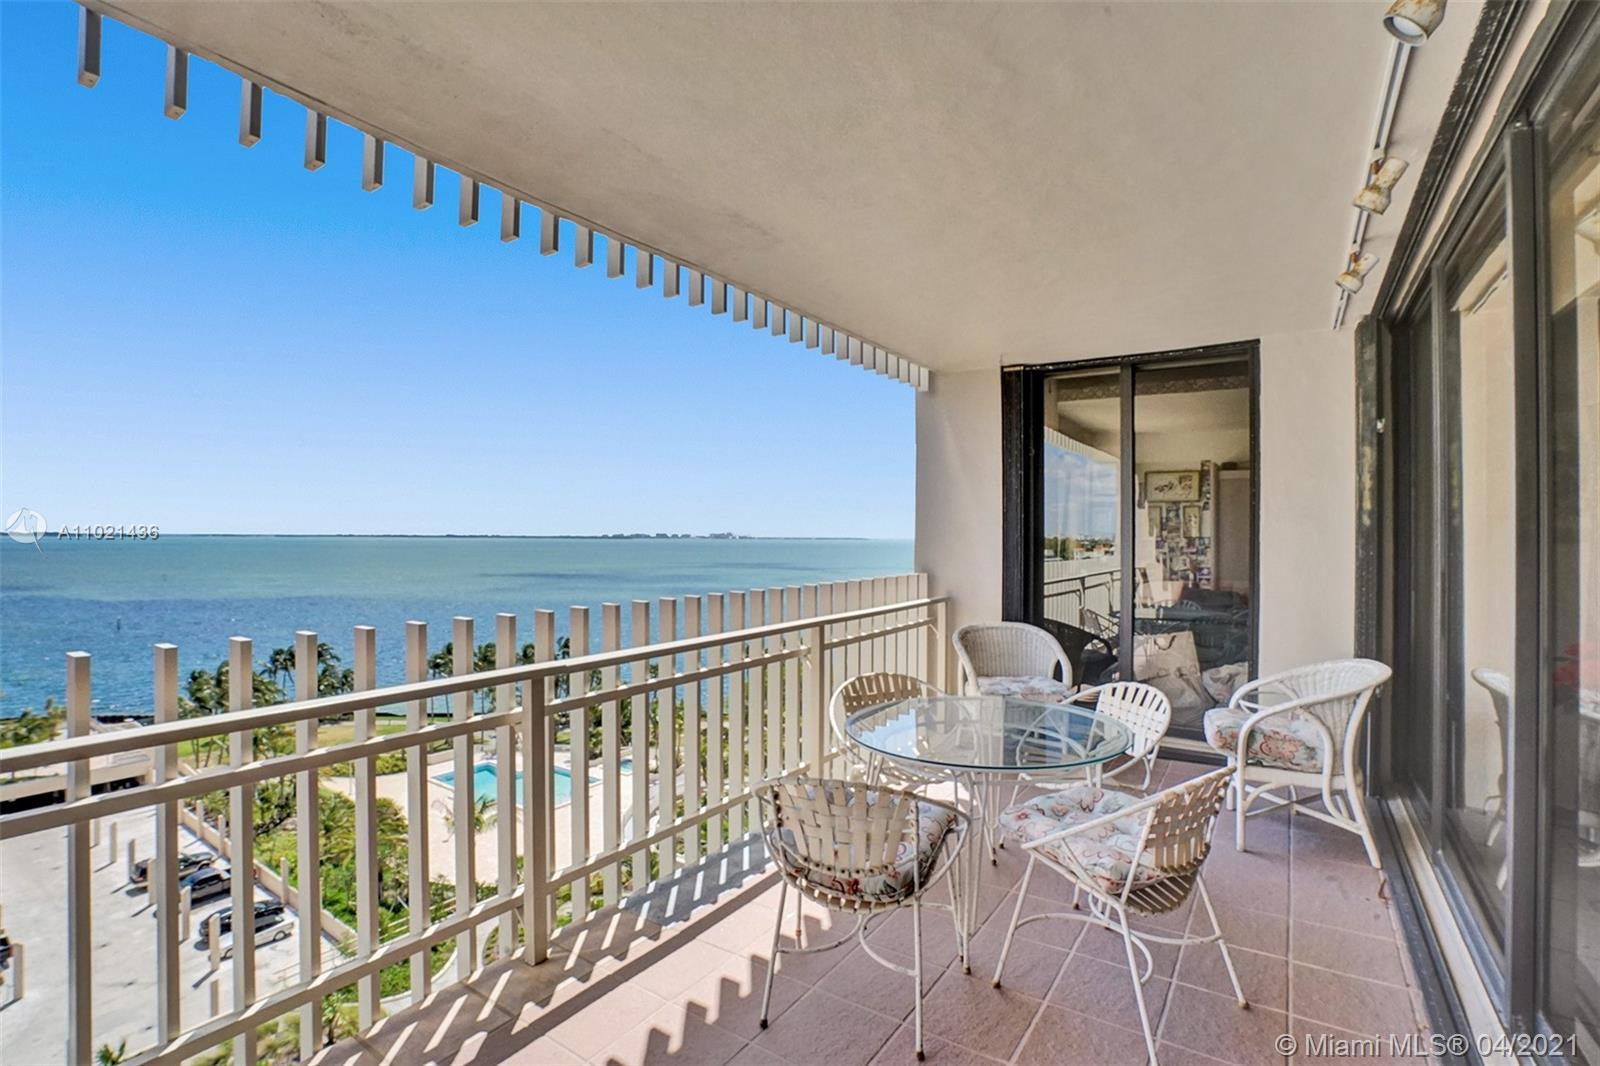 Looking to live in paradise, Look no further!  This large 2 bedroom, 2 bathroom is one of the larger two bedroom floor plans offering 1,882 square feet of living space.  This residence faces North East offering views of the east bay. Enjoy beautiful sunrises each morning right from your terrace or from any of the bedrooms.  Features include a side by side washer and dryer, tons of cabinets for storage, built-ins, and a very spacious primary bedroom with a large walk-in closet, room for a seating area, and its own bathroom with dule sinks, separate tub, and shower.  A great opportunity to customize and make this your own special home.  Live at Grove Isle, a 20-acre guarded isle with full services and resort style amenities. Perfectly located in desirable Coconut Grove.